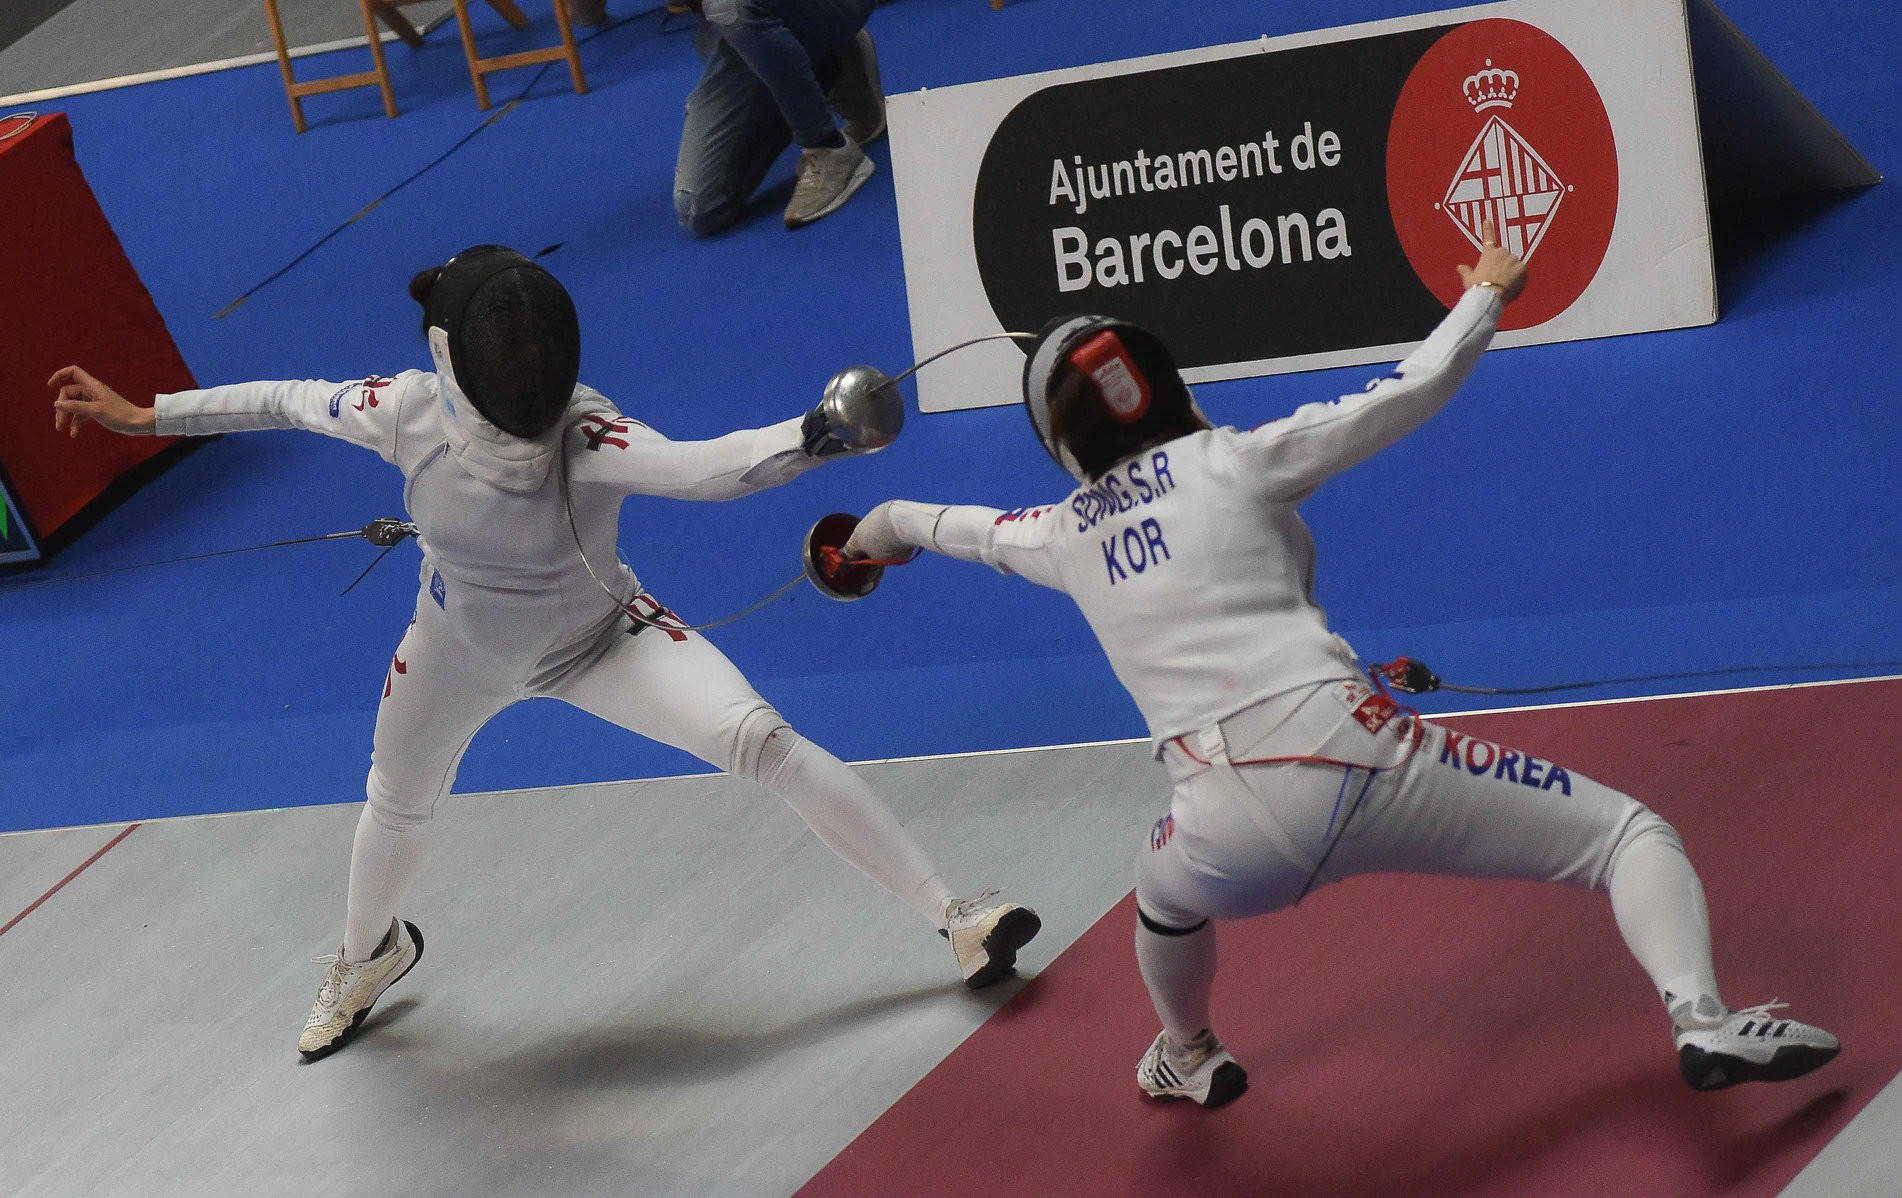 Kong continues impressive form with FIE Women's Épée World Cup win in Barcelona